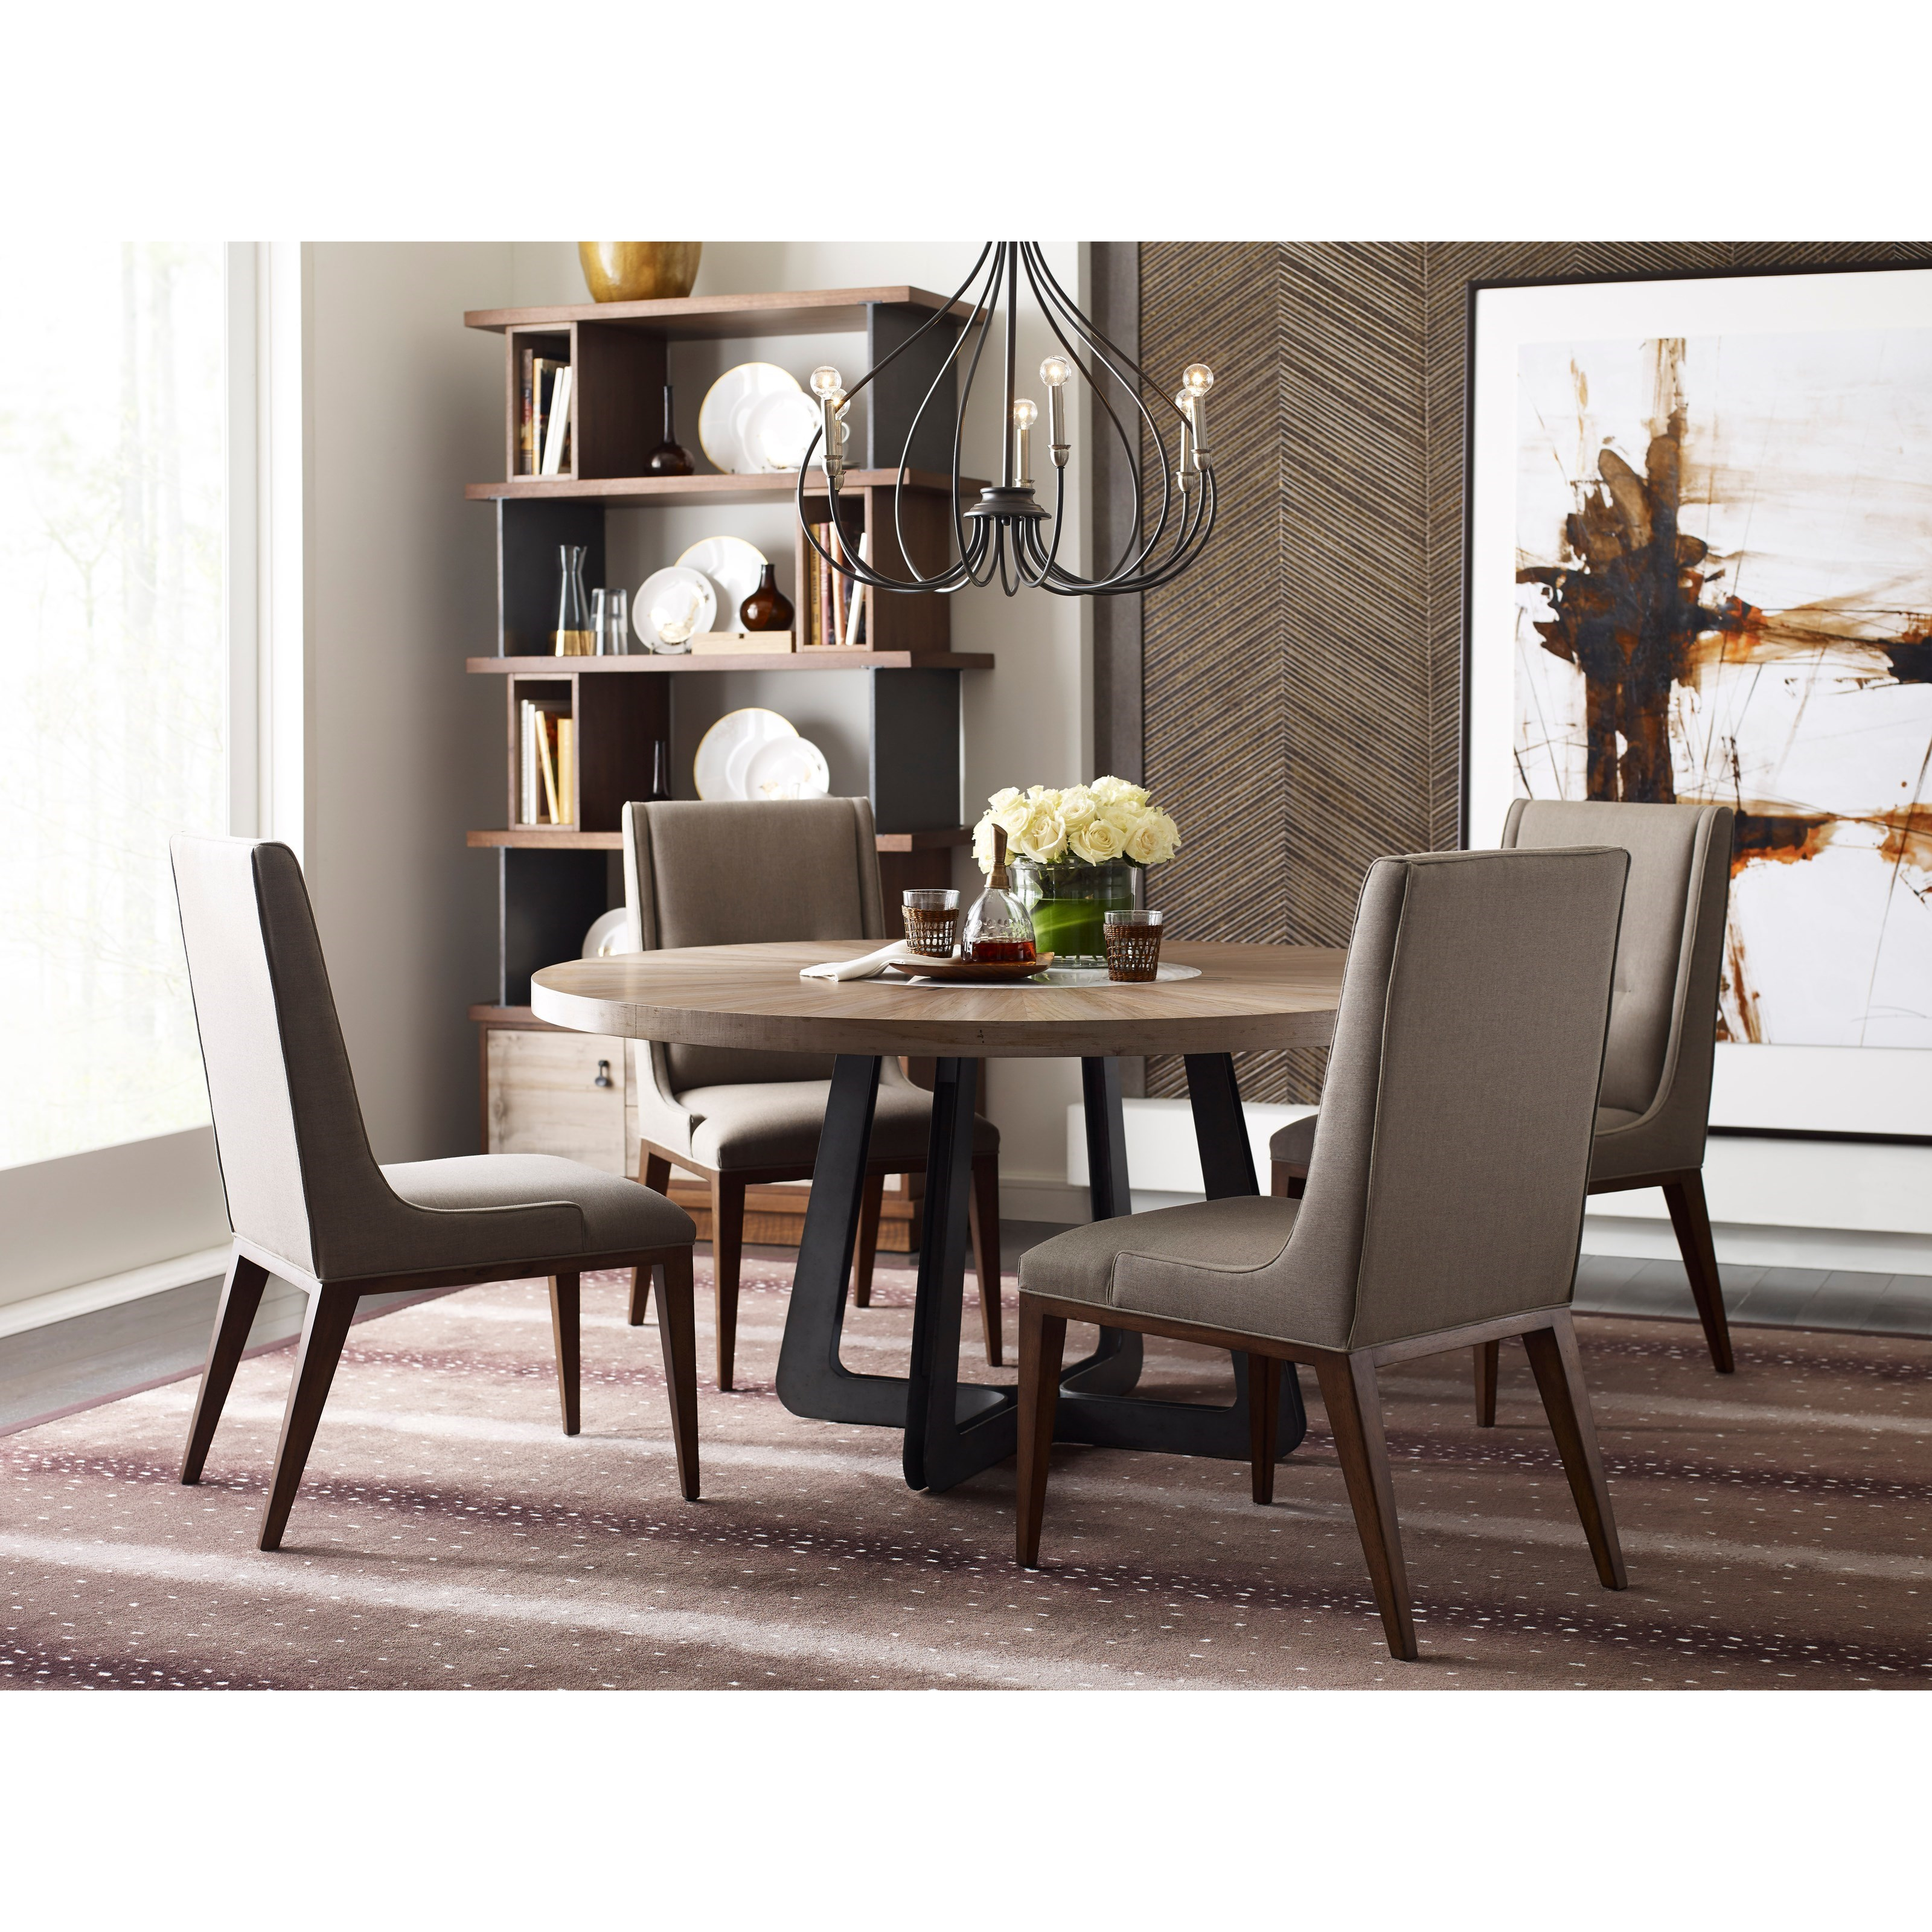 Modern Synergy Casual Dining Room Group by American Drew at Alison Craig Home Furnishings